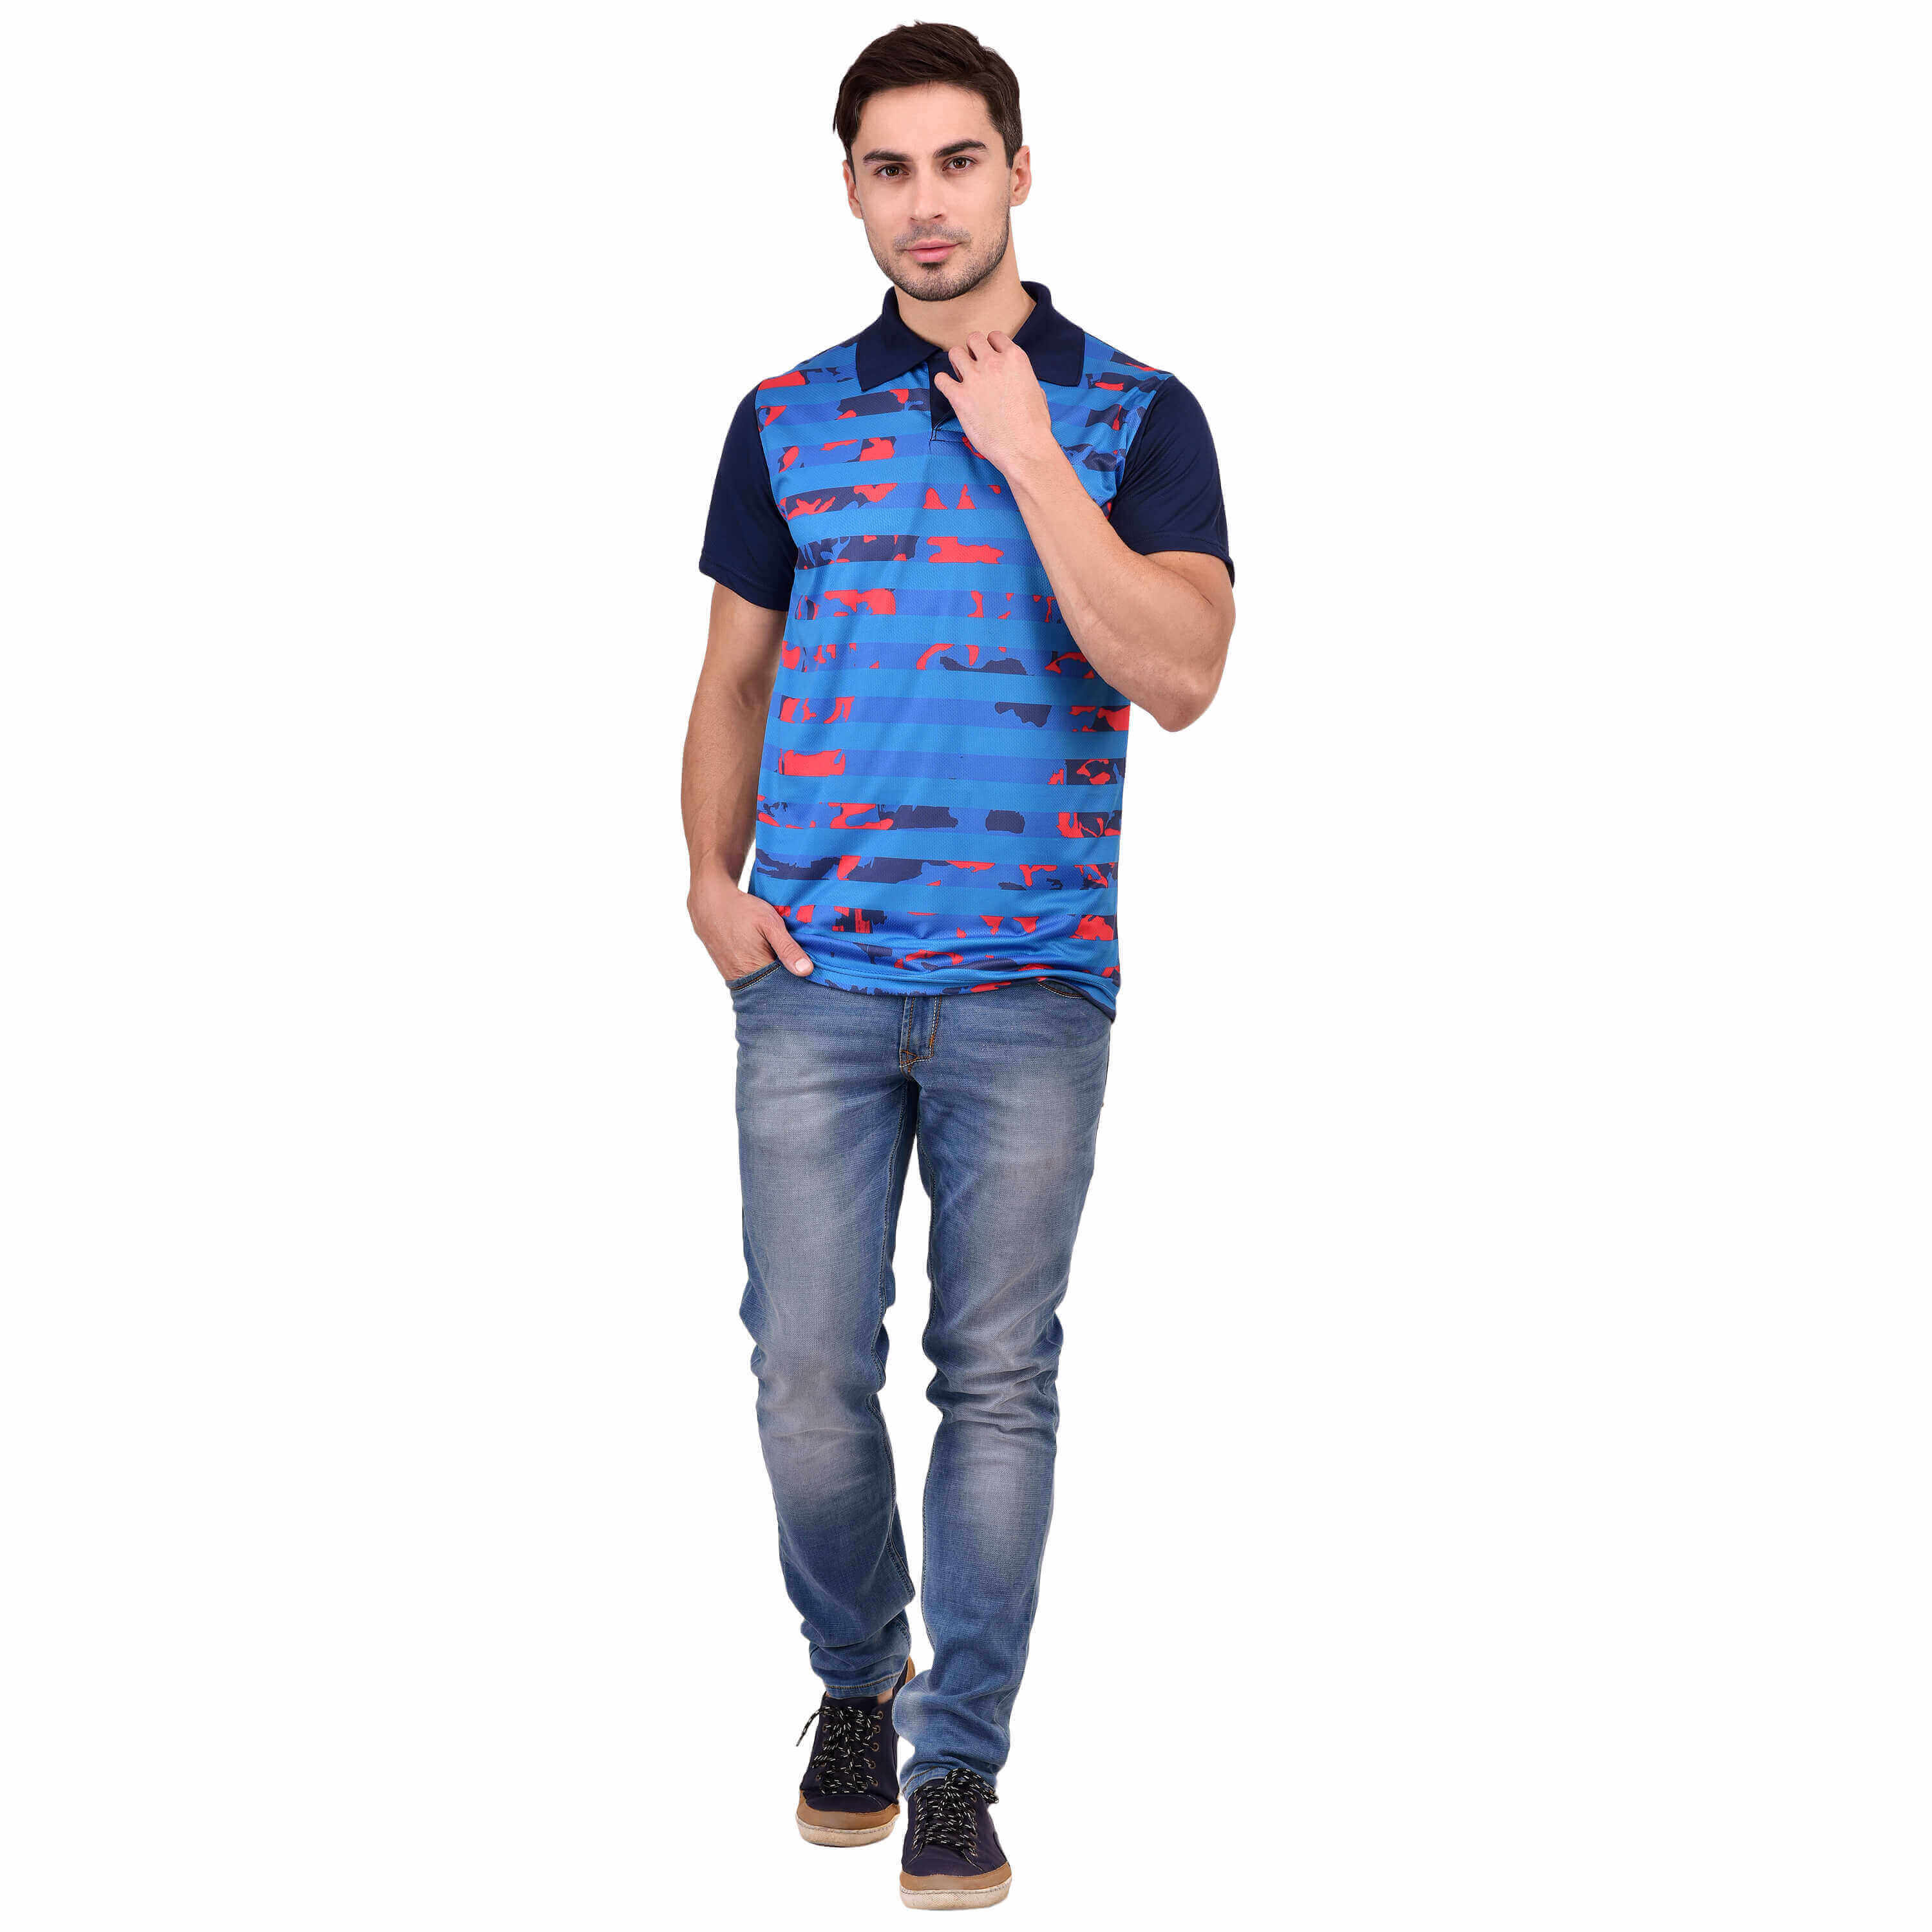 Cool T Shirts Manufacturers in Ajmer